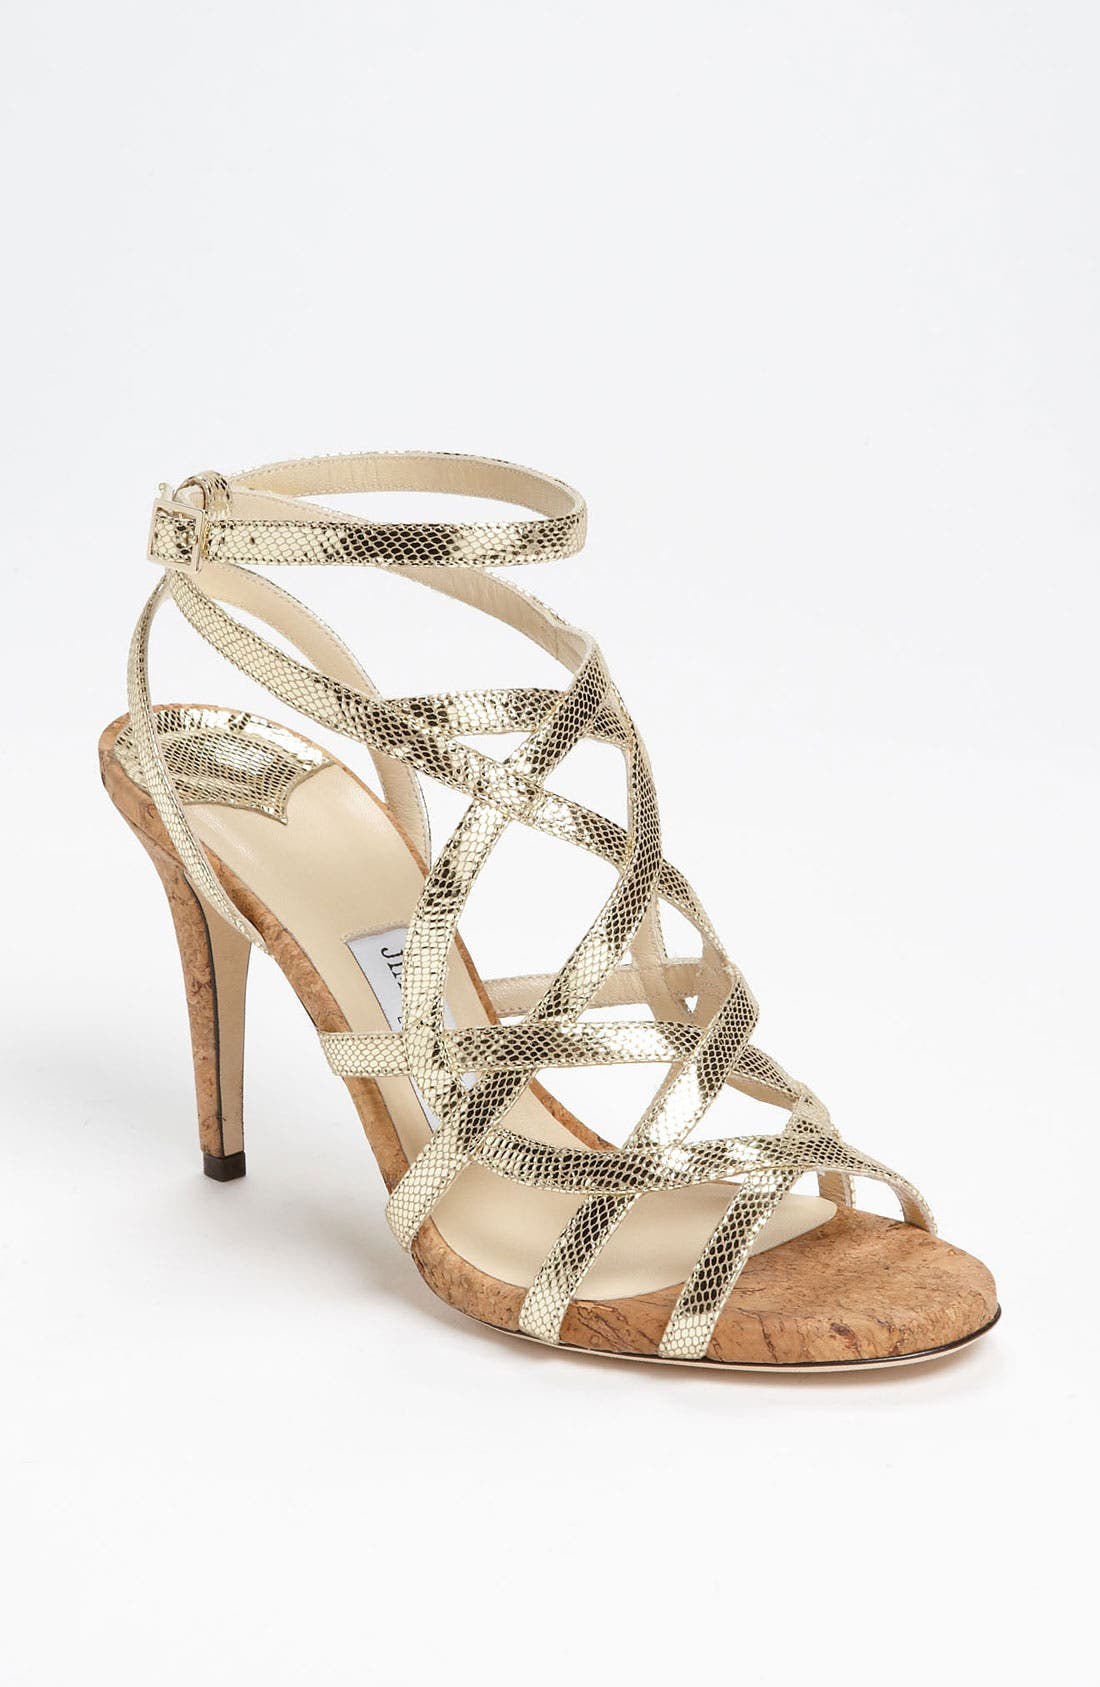 JIMMY CHOO 'Deeta' Sandal, Main, color, 710